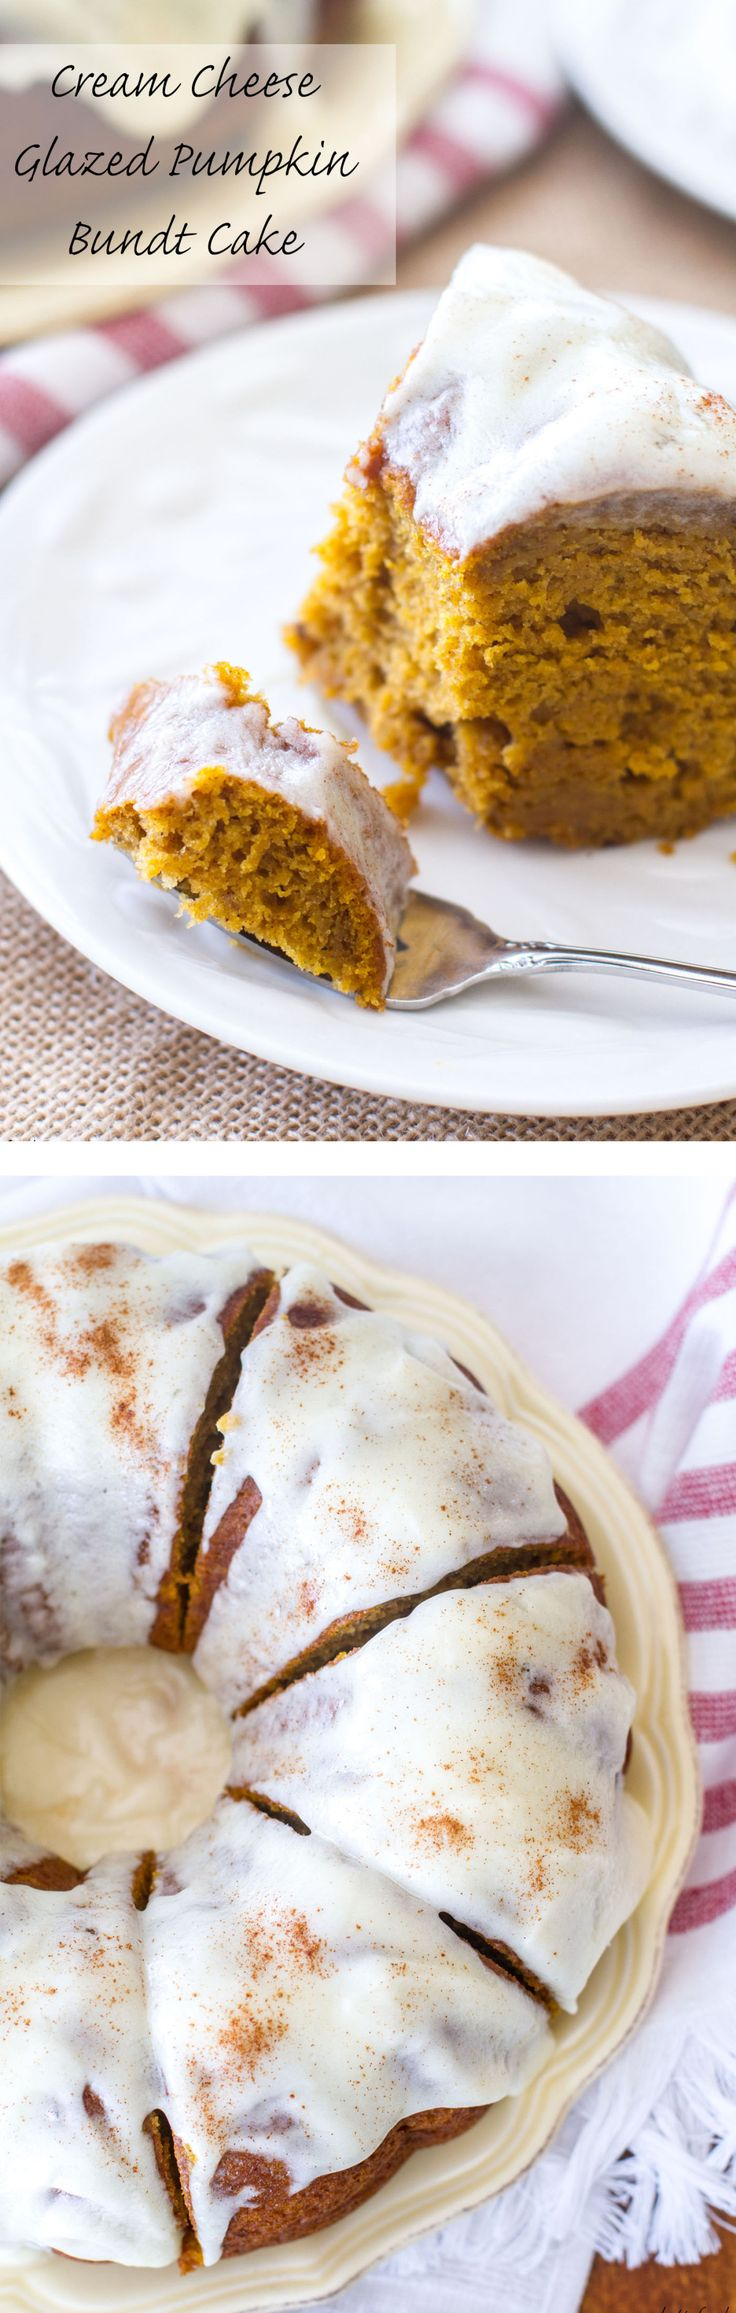 This classic dessert is full of pumpkin flavor, cinnamon spice, and rich cream cheese! It is absolutely Heavenly.